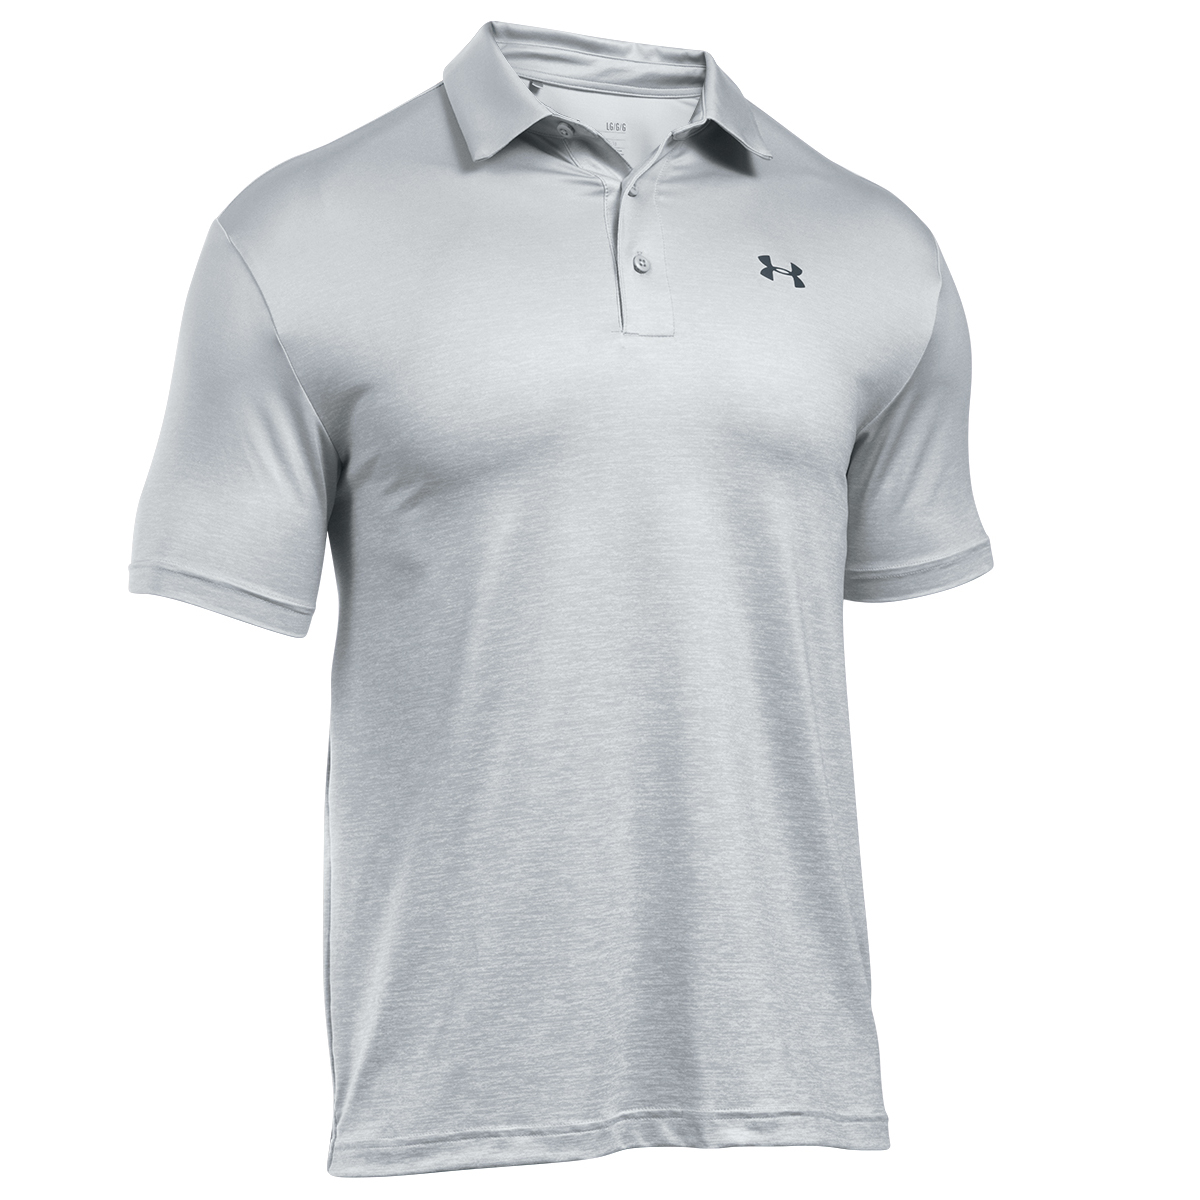 73d81178556105 Under Armour Playoff Abe Twist Polo Shirt from american golf